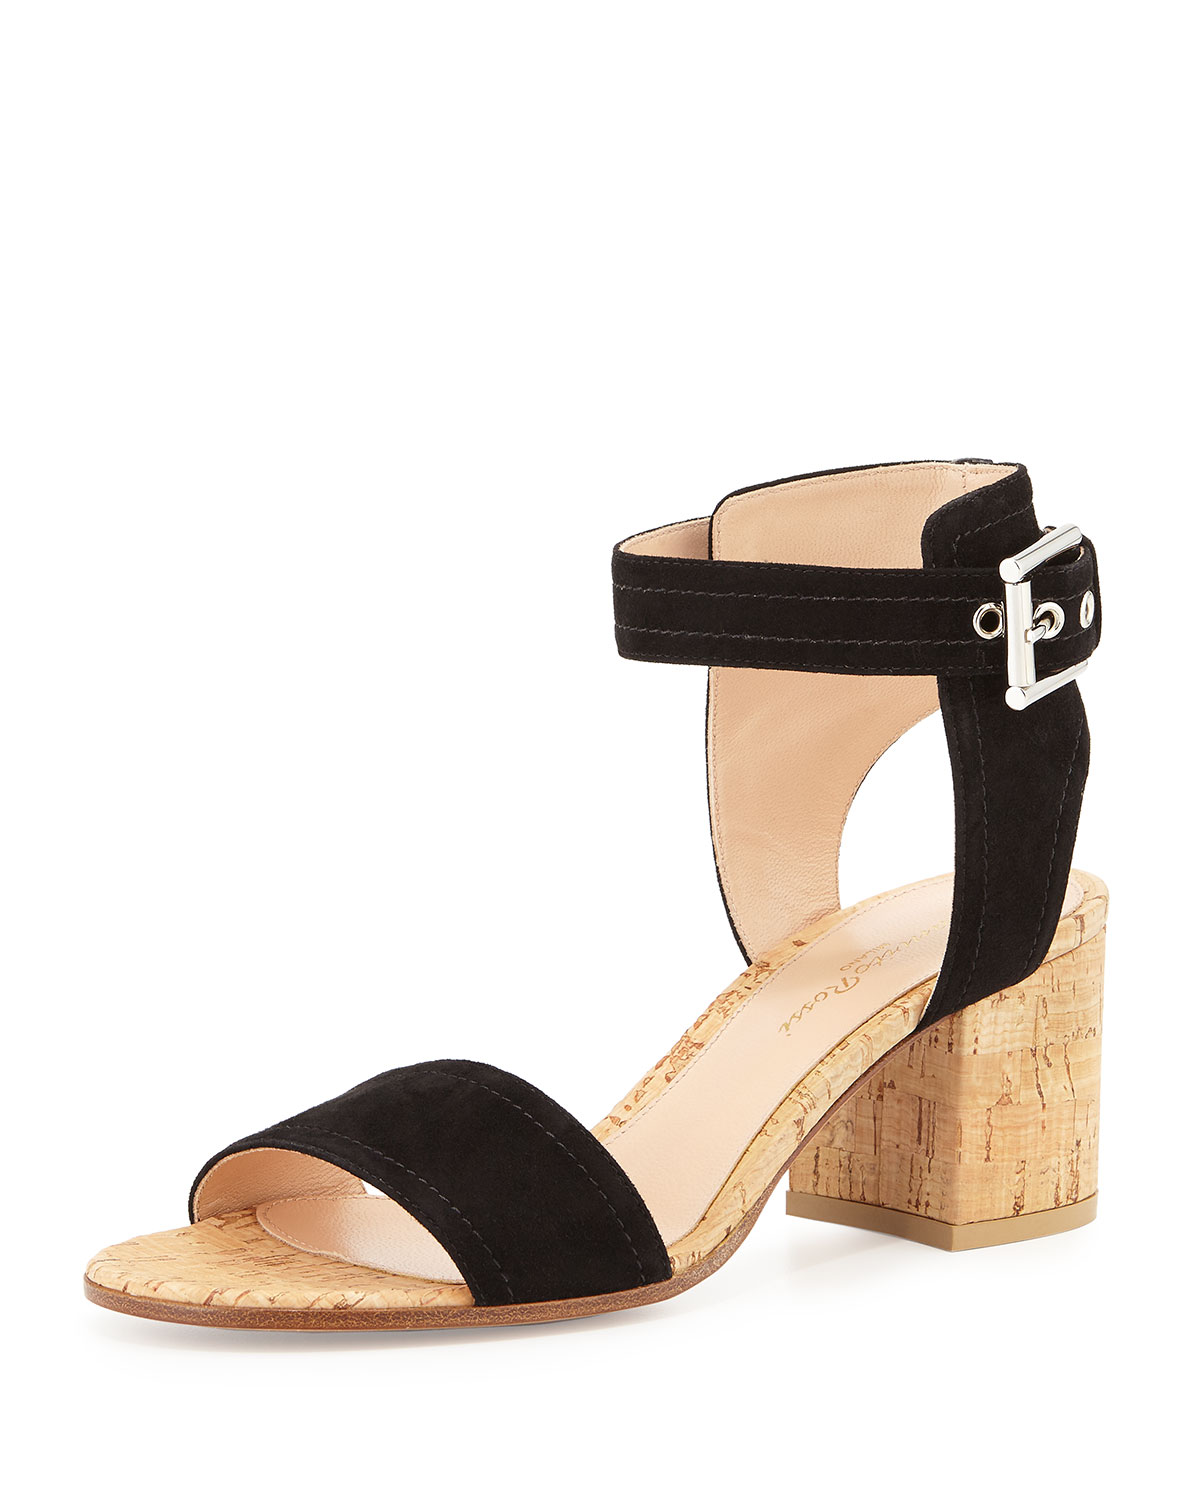 Suede Ankle-Wrap Sandal, Black, Size: 35.0B/5.0B - Gianvito Rossi